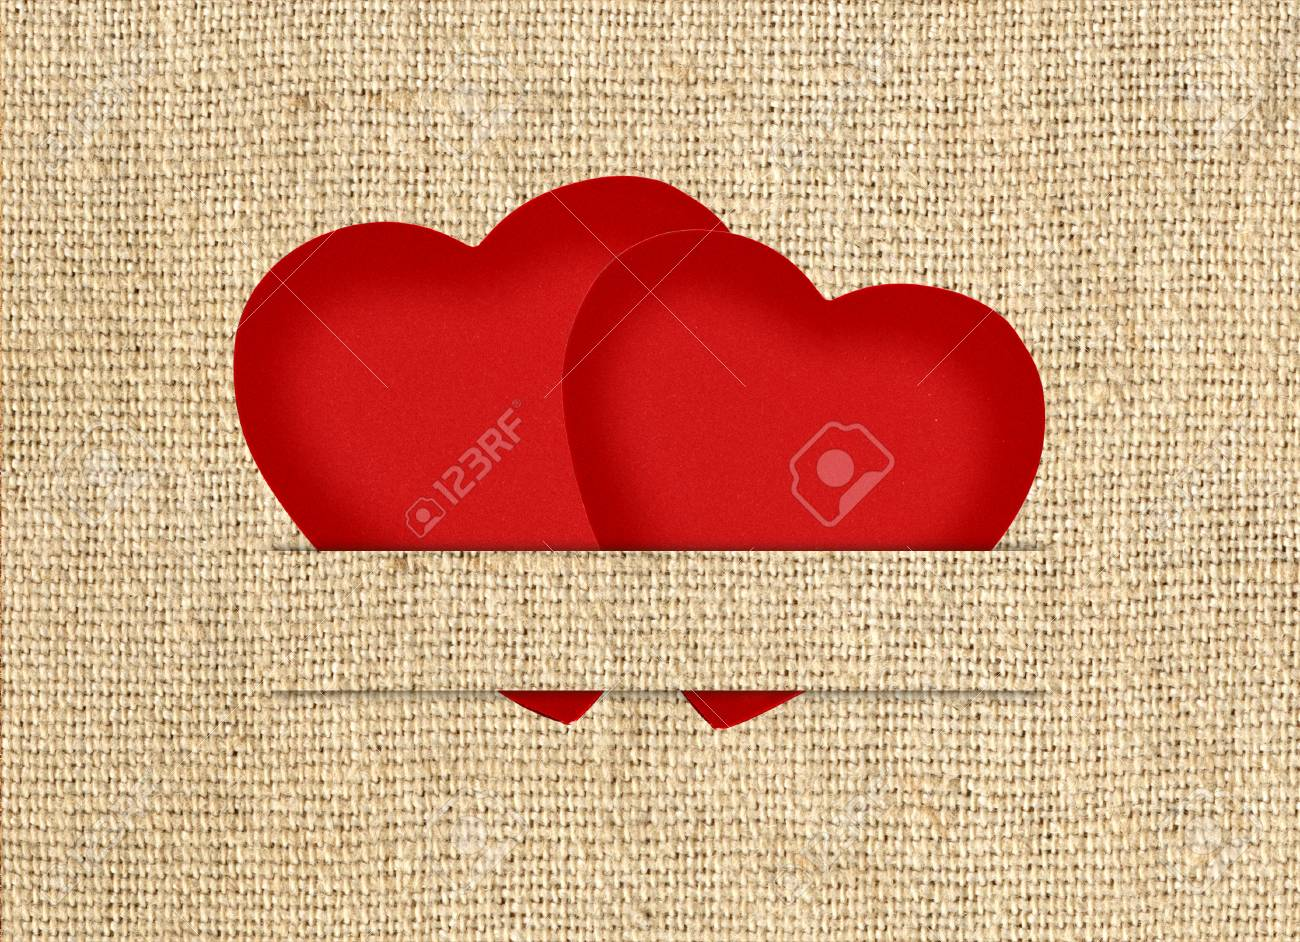 Vintage Valentine Card In The Form Of Red Paper Hearts On A Fabric